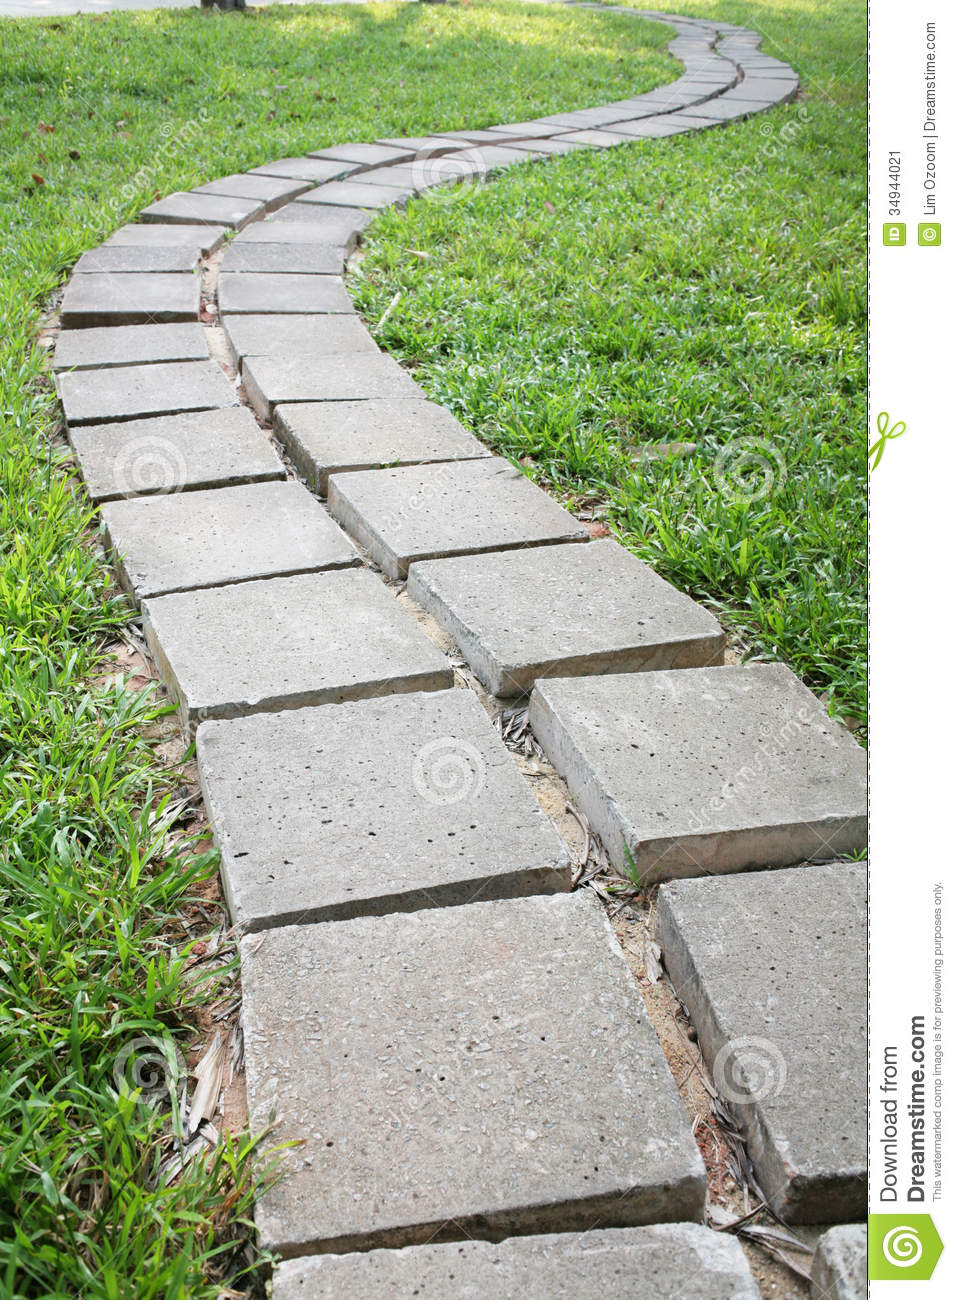 Stone path stock image image 34944021 for Stone path in grass